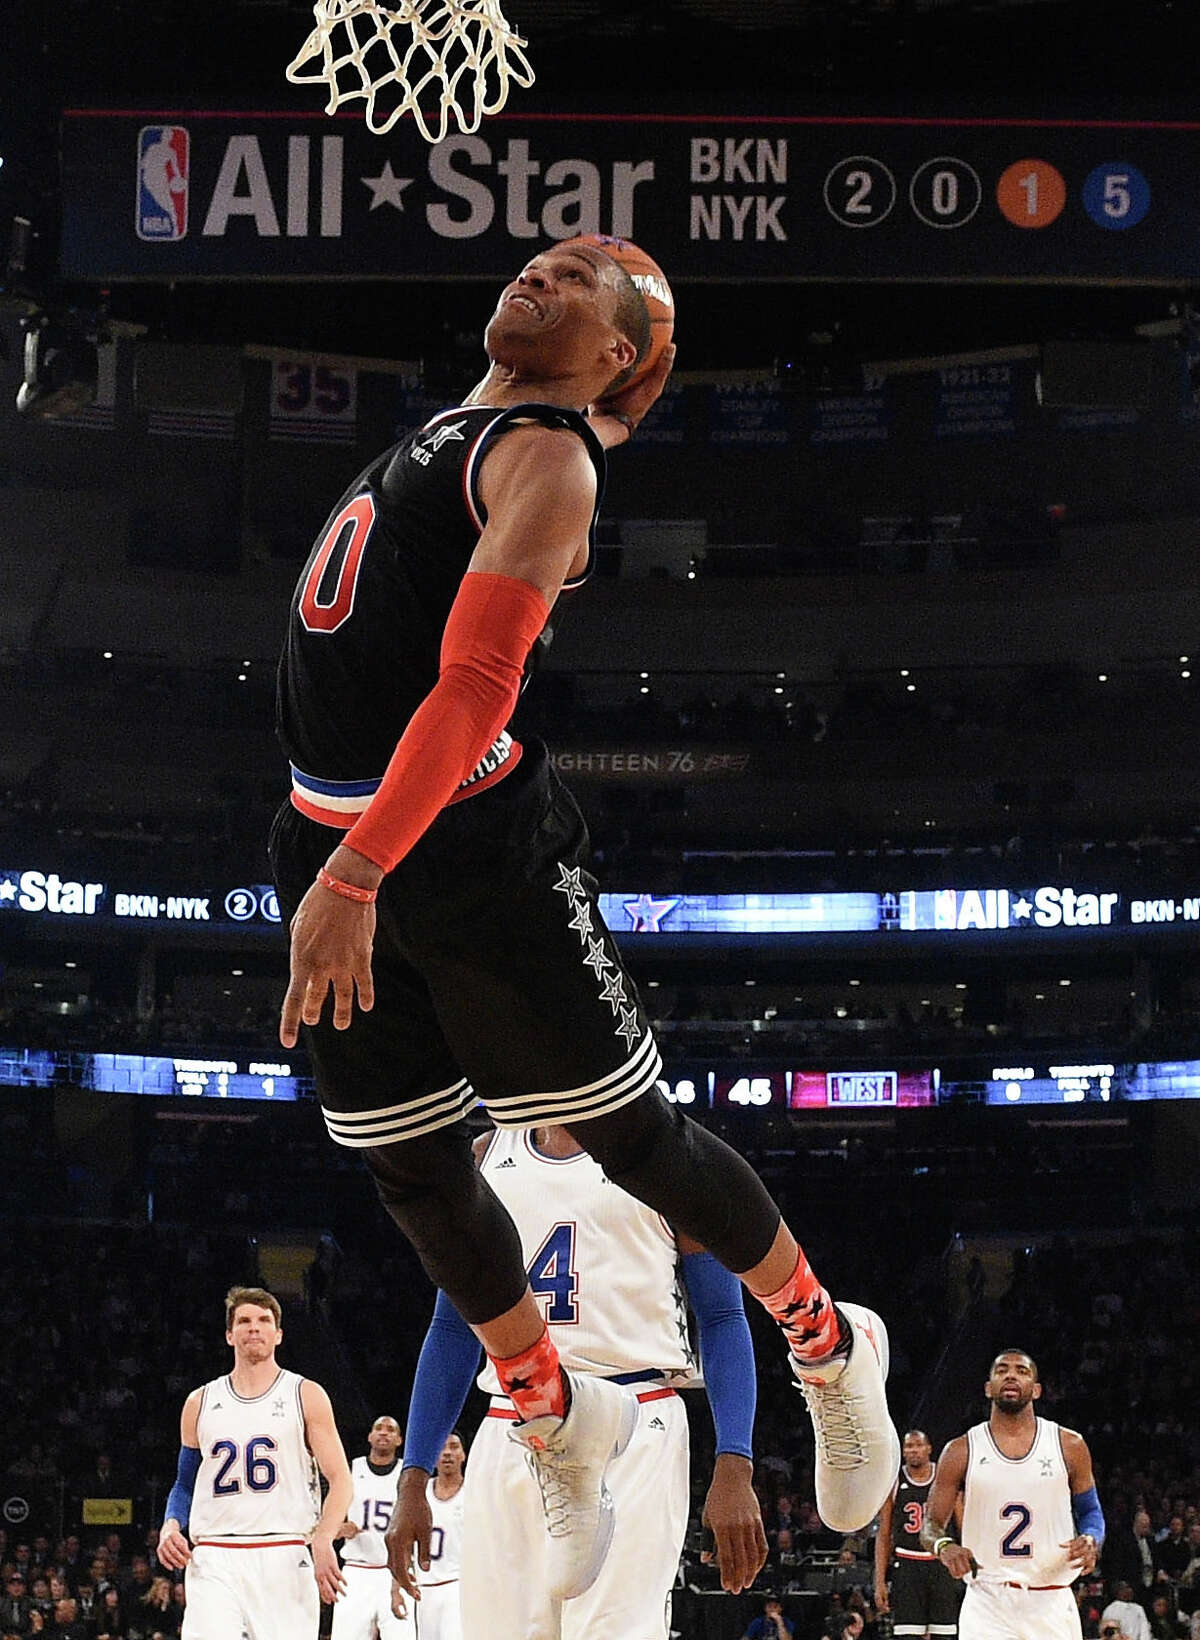 Russell Westbrook of the Oklahoma City Thunder and the Western Conference dunks the ball during the 2015 NBA All-Star Game.